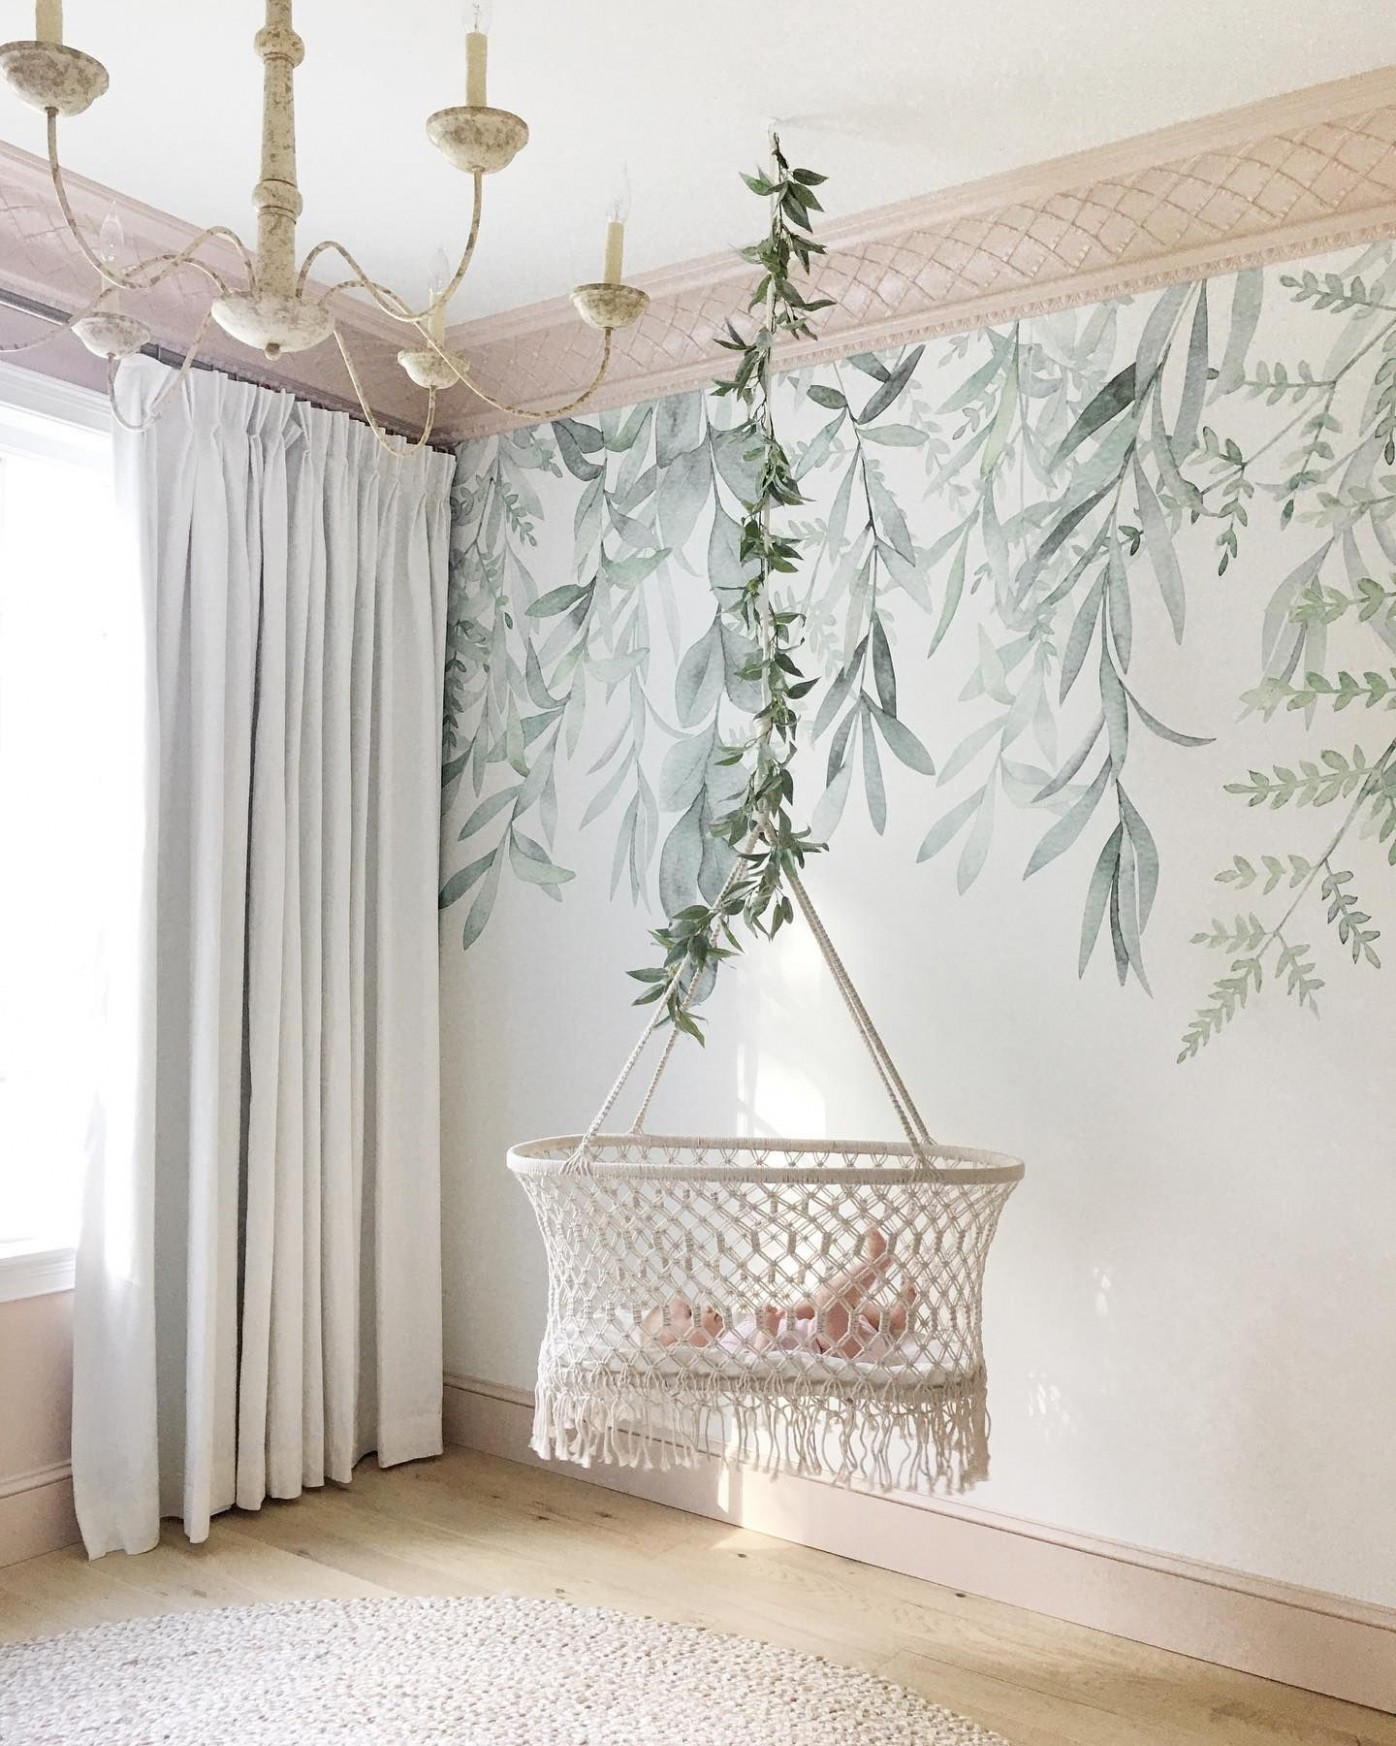 Basinette With Faux Garland Decor in 10  Baby room decor  - Baby Room Garland